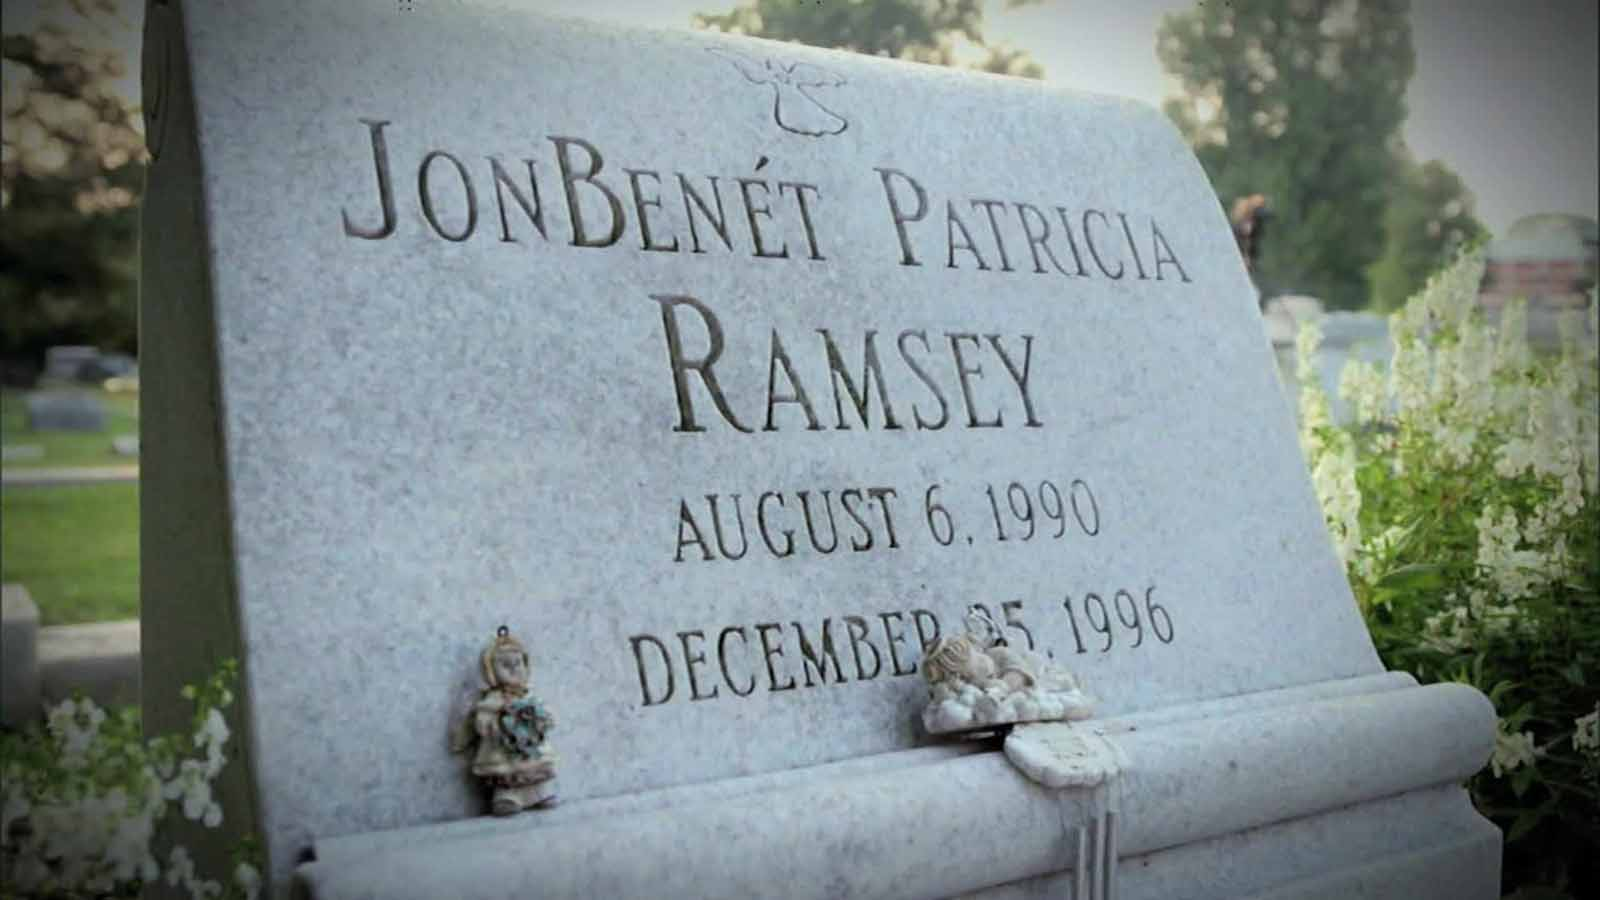 The case of JonBenét Ramsey has been covered by everyone, yet her killer has yet to be discovered. So who killed the pageant queen?